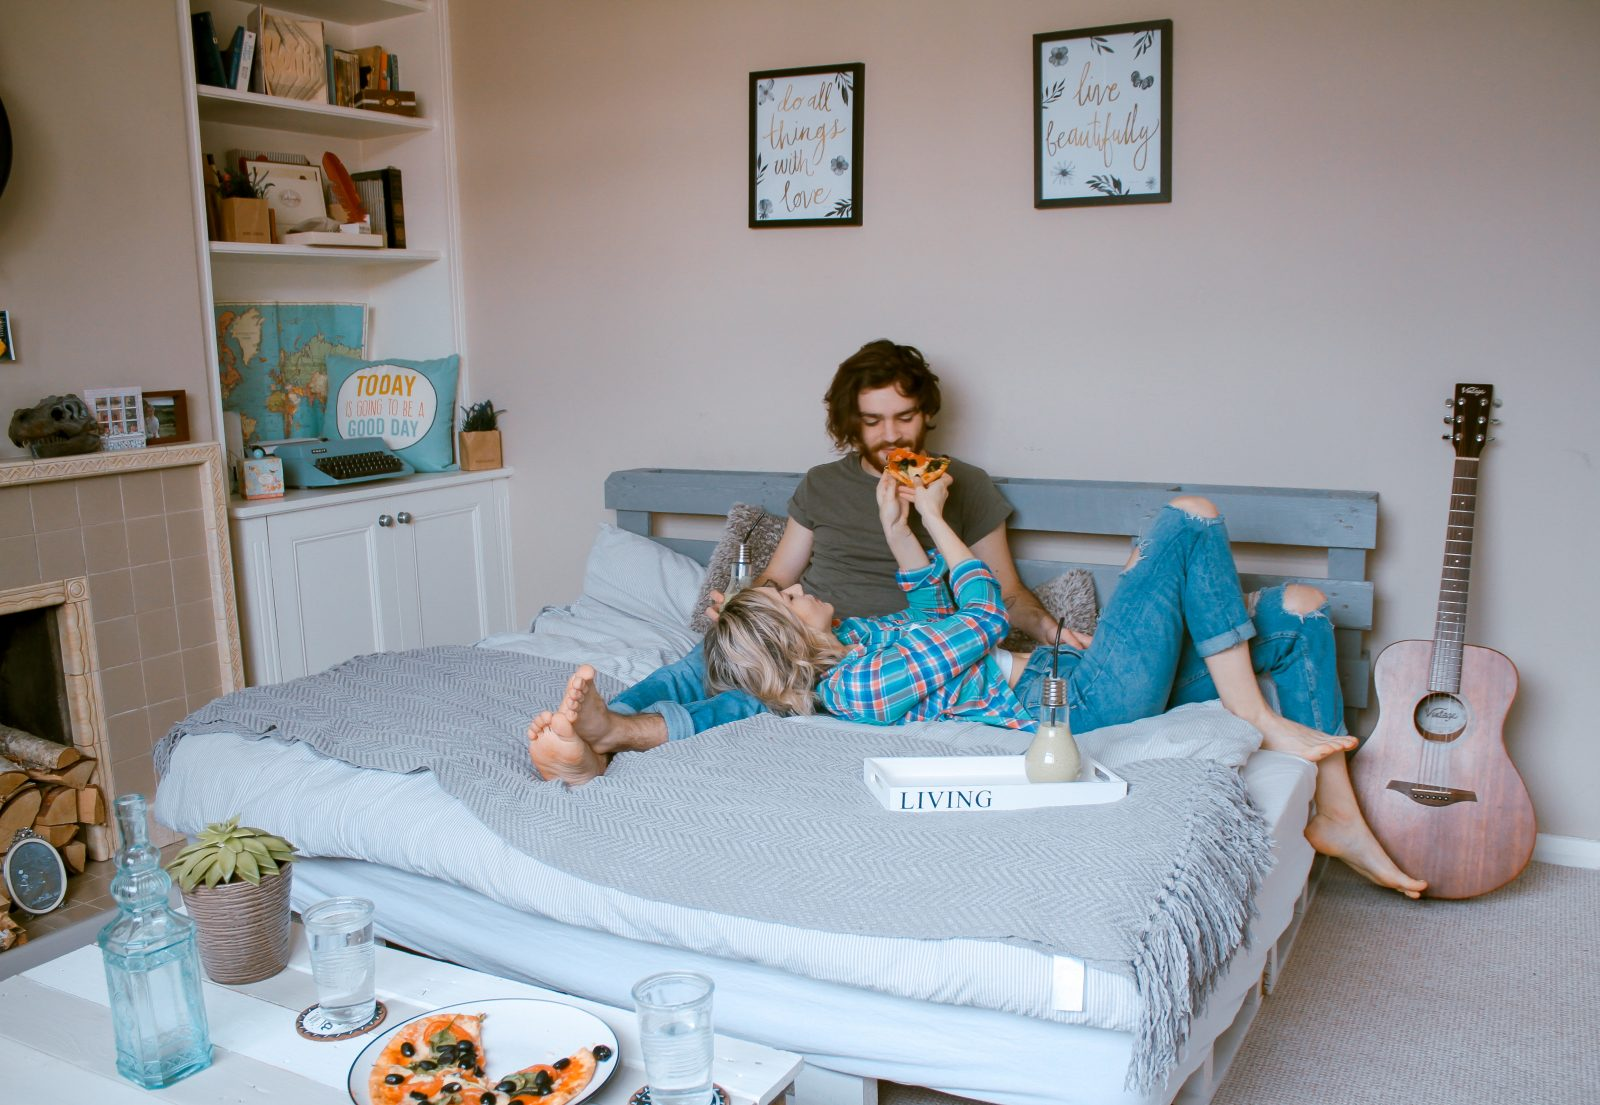 Couple spending quality time together in bed